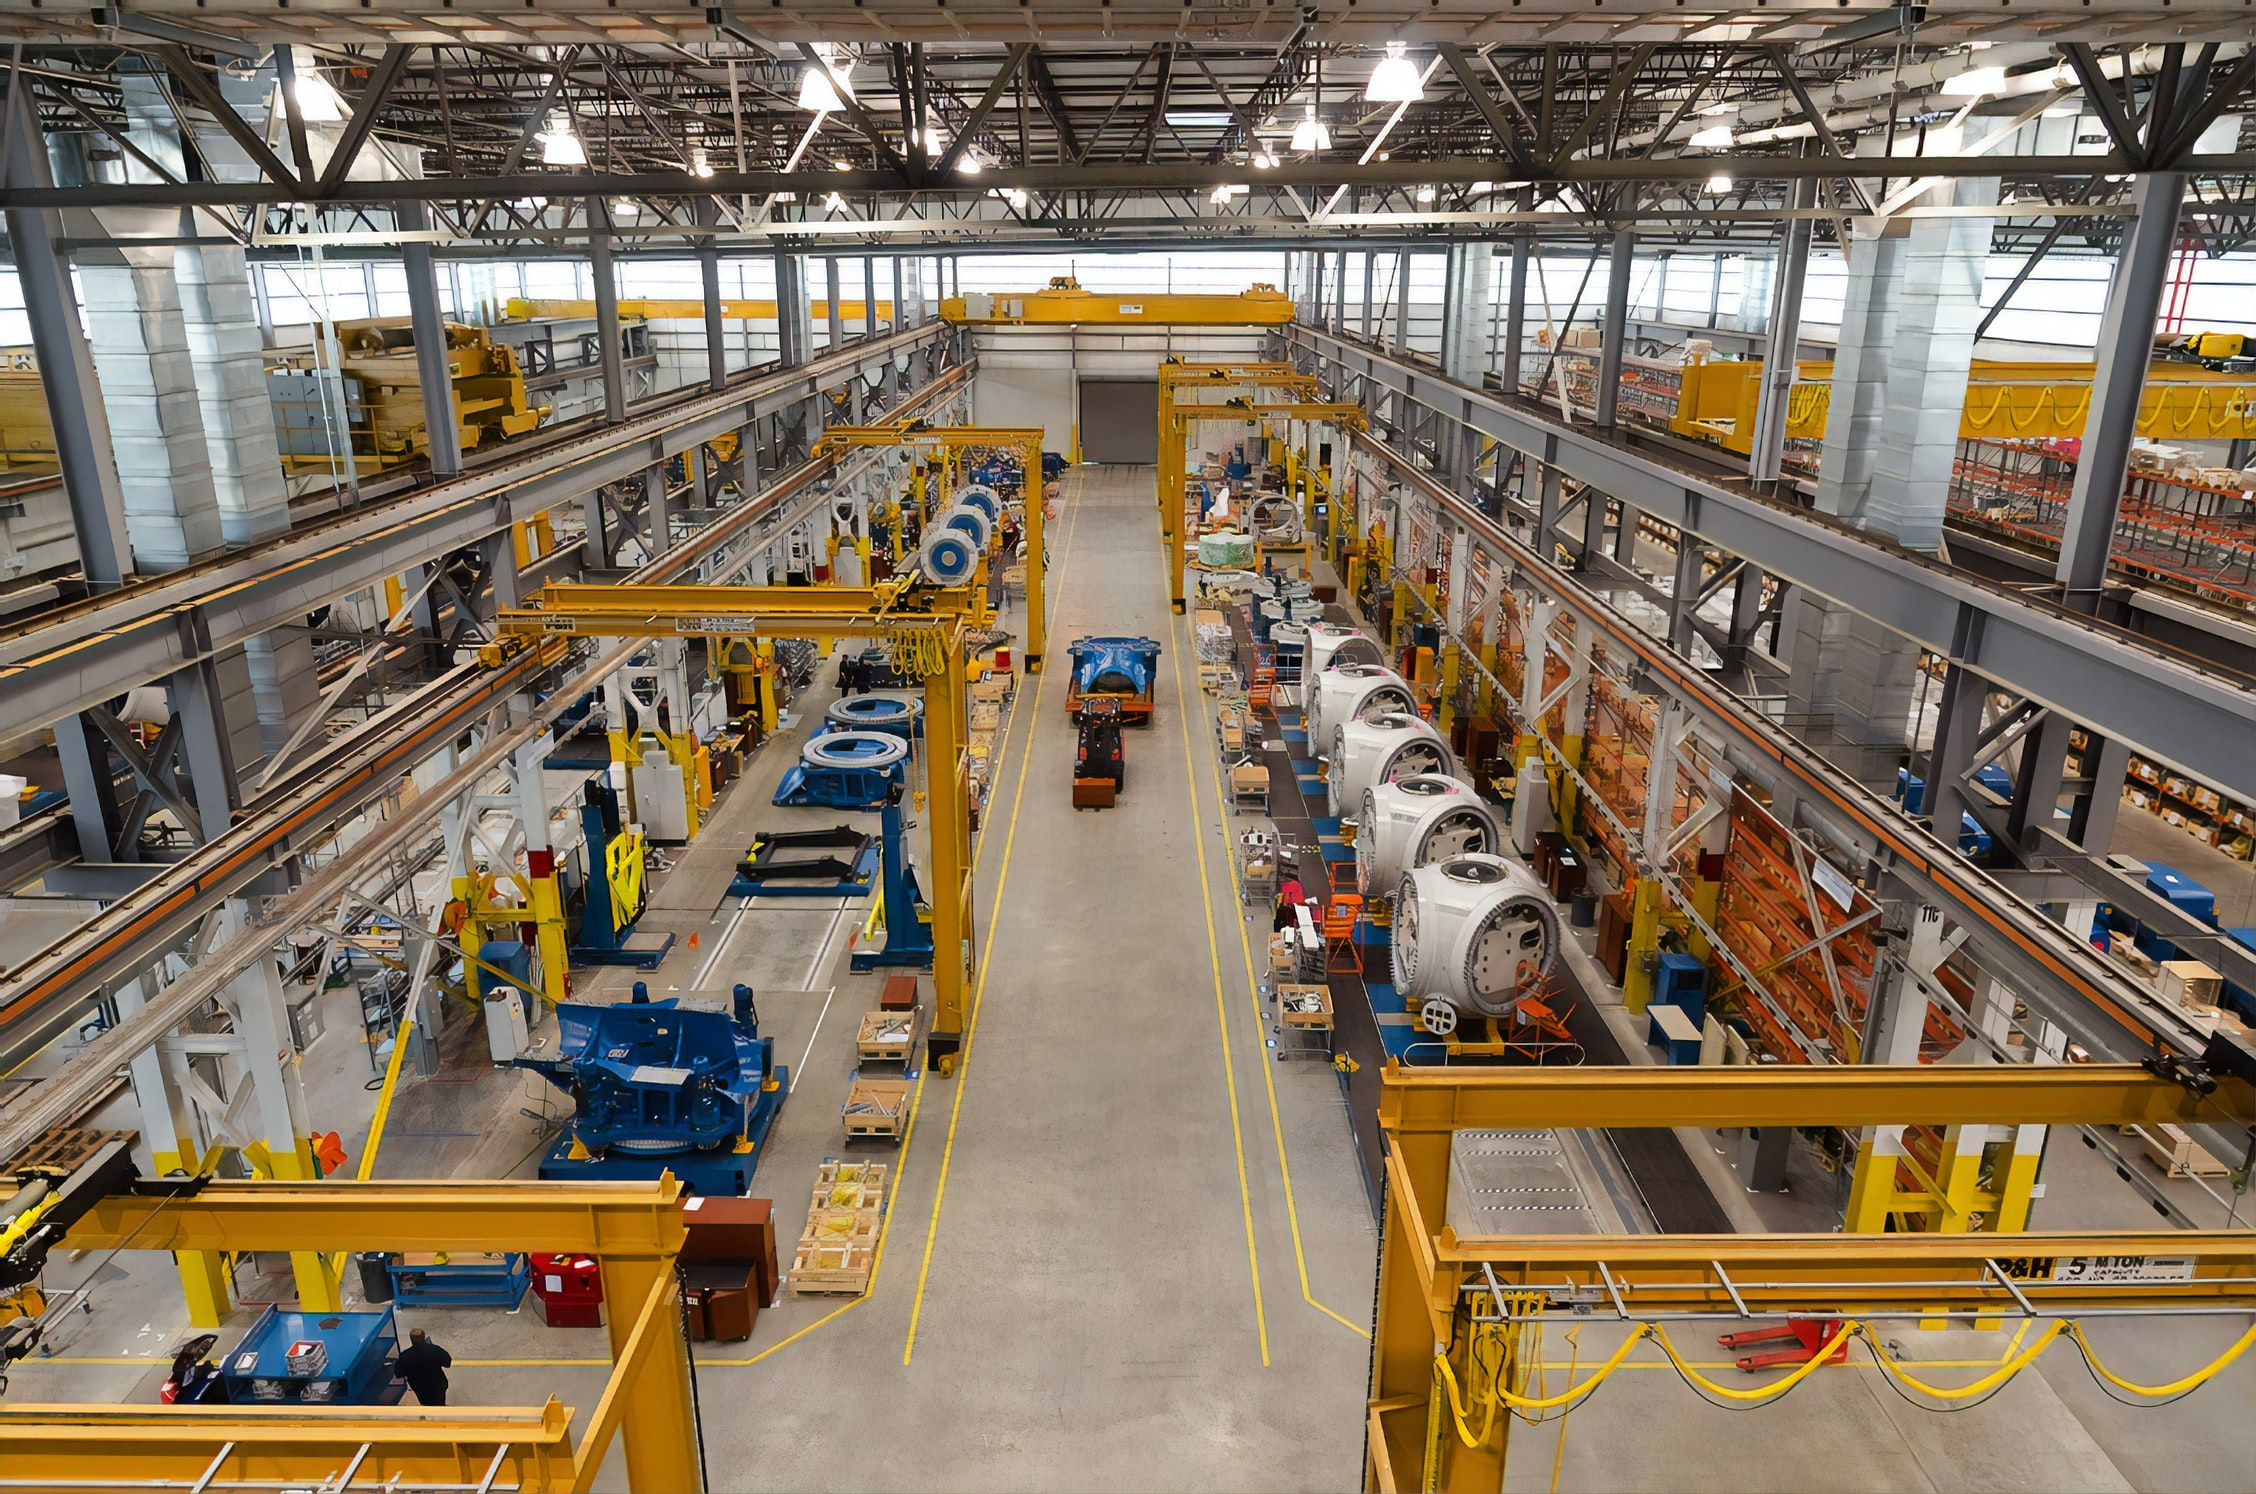 Manufacturing plant making wind turbines on assembly line